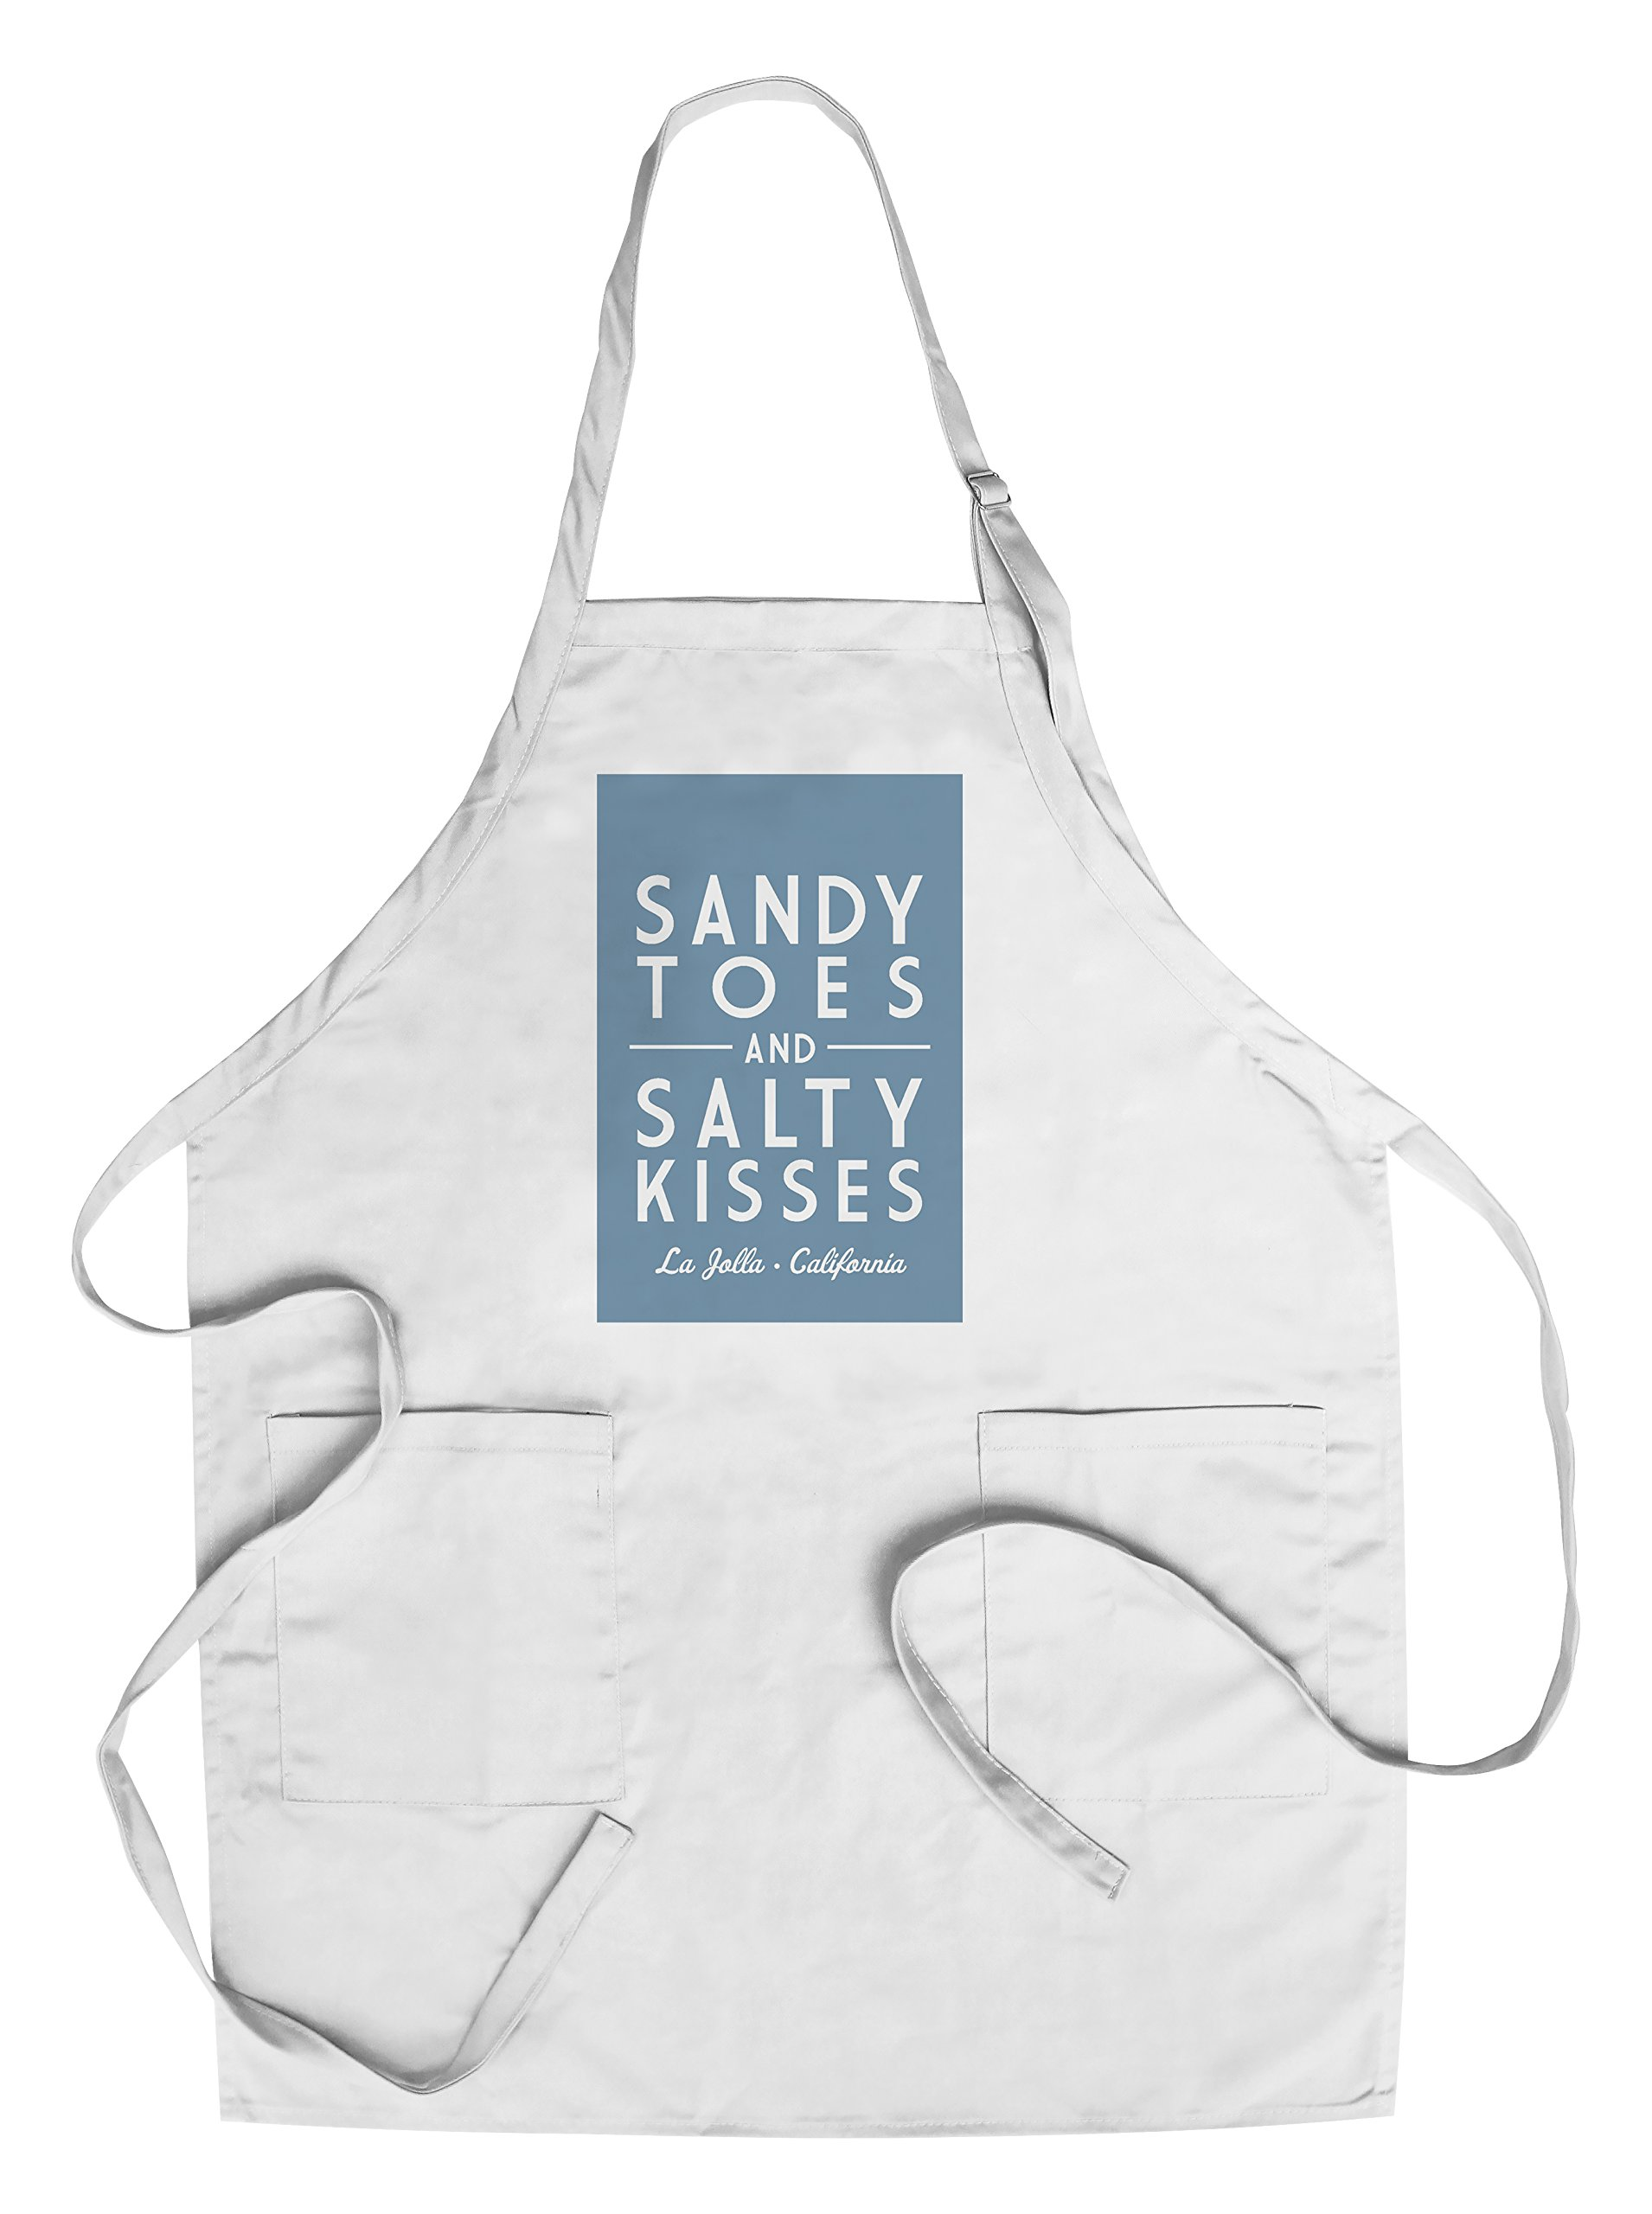 La Jolla, California - Sandy Toes and Salty Kisses - Simply Said (Cotton/Polyester Chef's Apron)